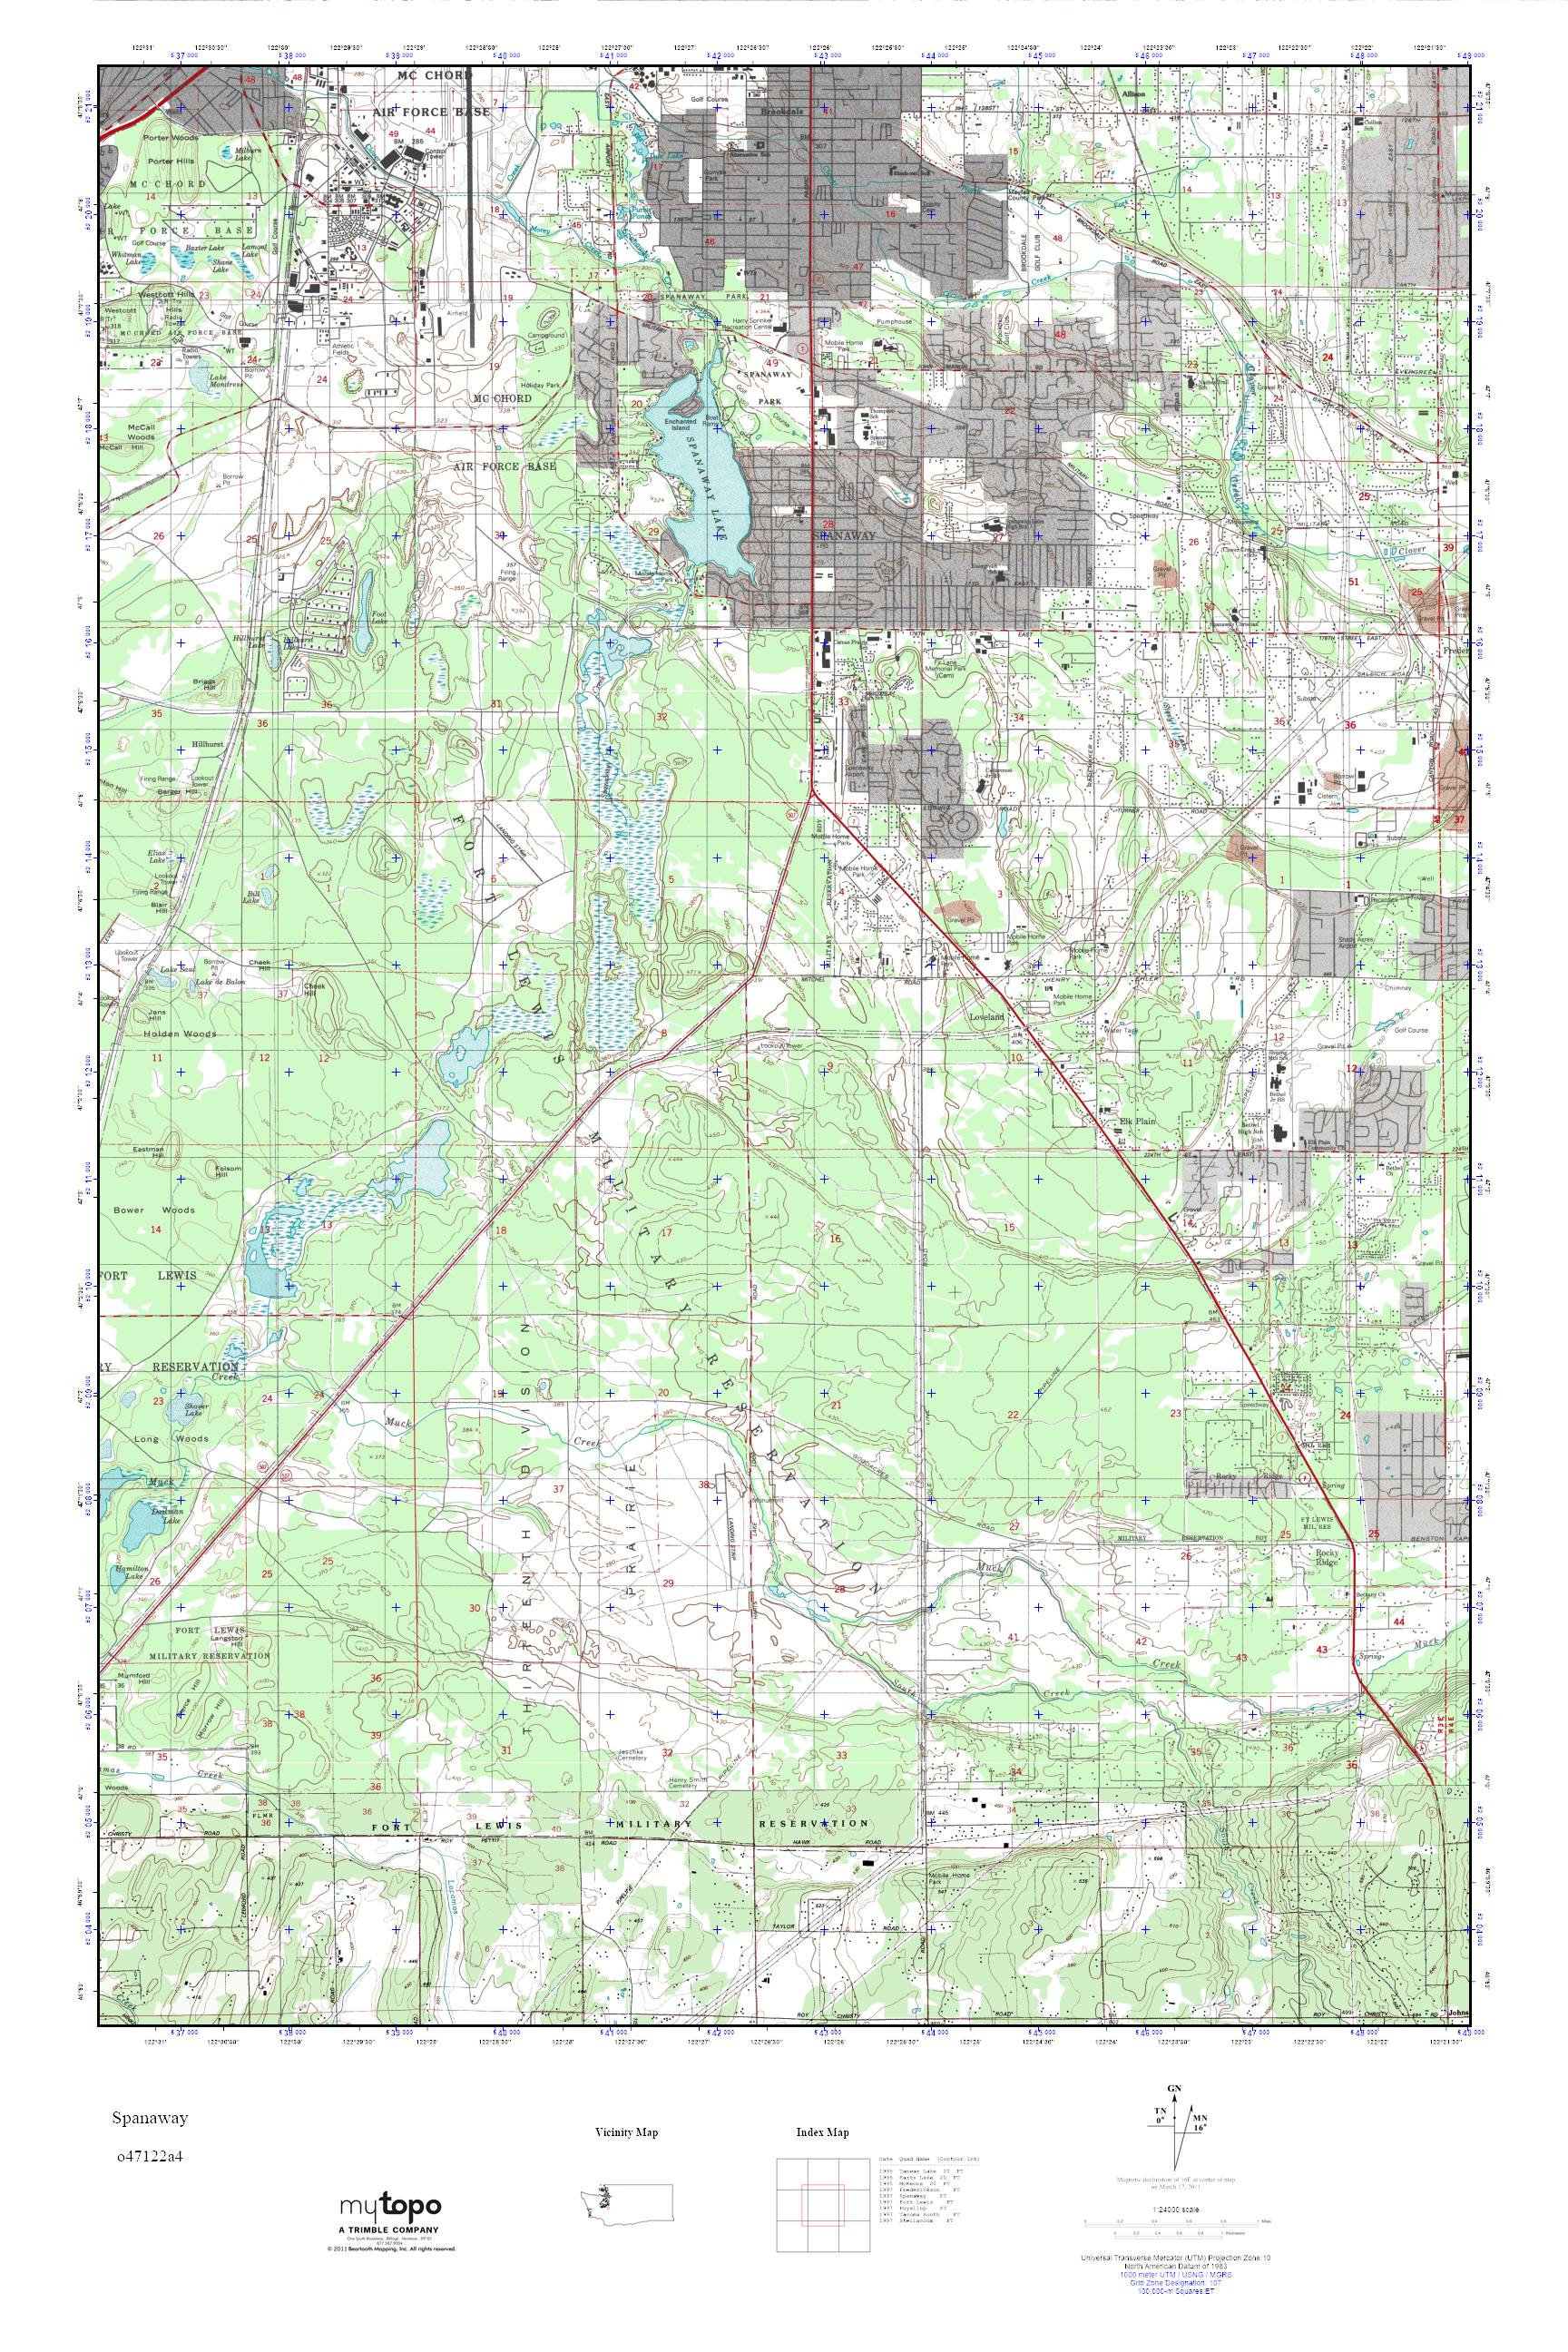 Mytopo Spanaway Washington Usgs Quad Topo Map